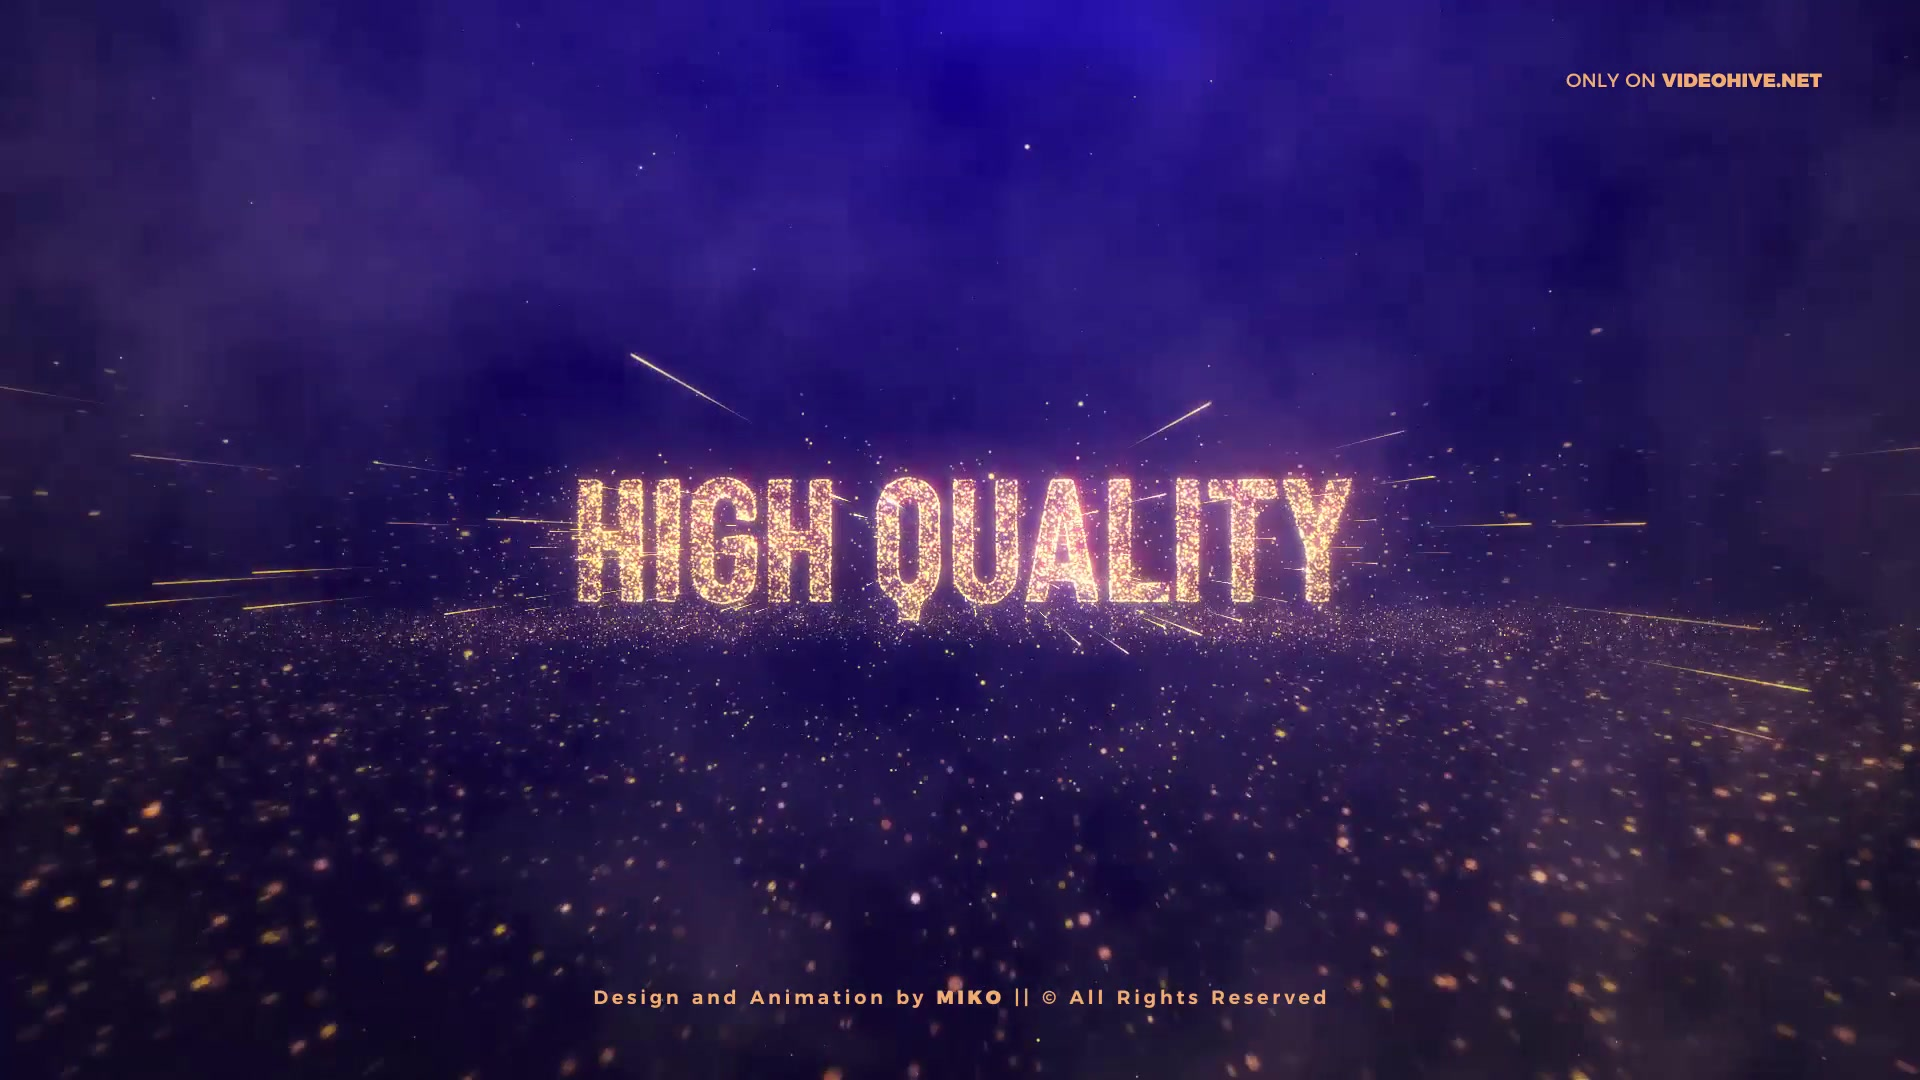 Awards Gold Particles Titles Videohive 24513891 After Effects Image 8